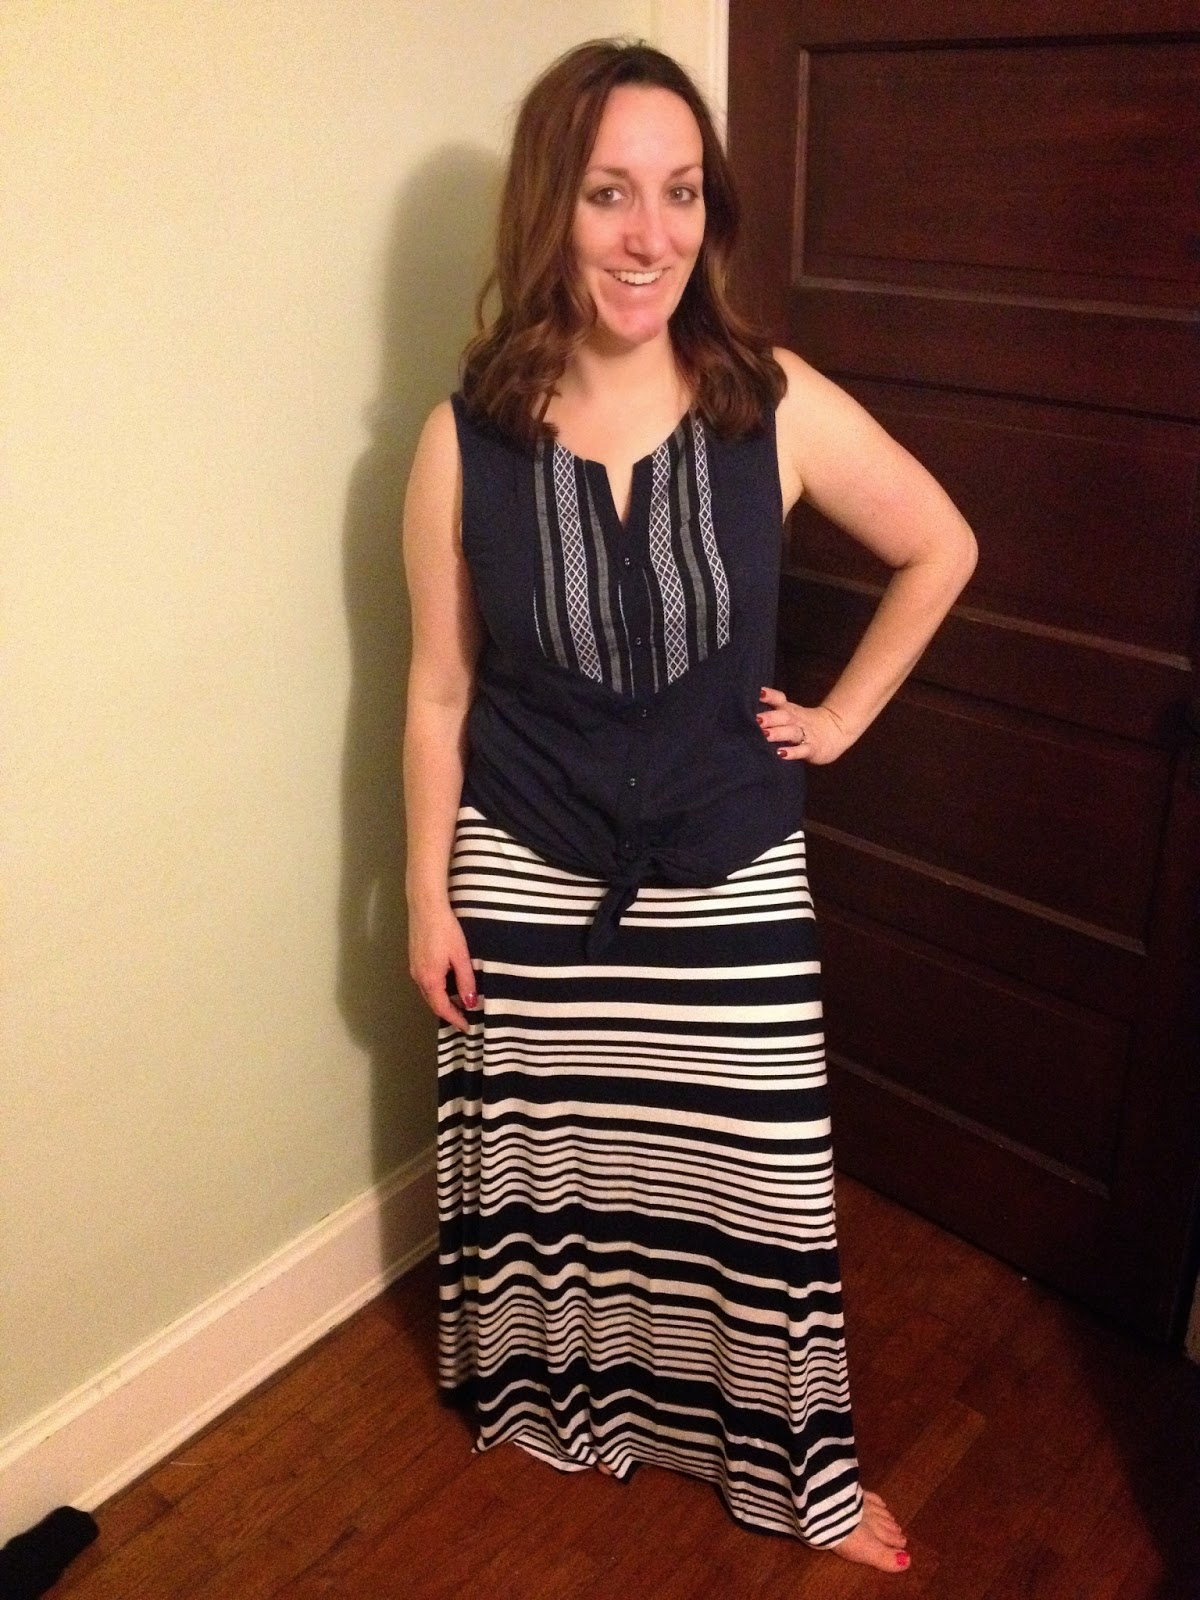 Skies are Blue Manna Tie Front knit Top $48, Renee C Marilyn Mix Striped Maxi Skirt $58